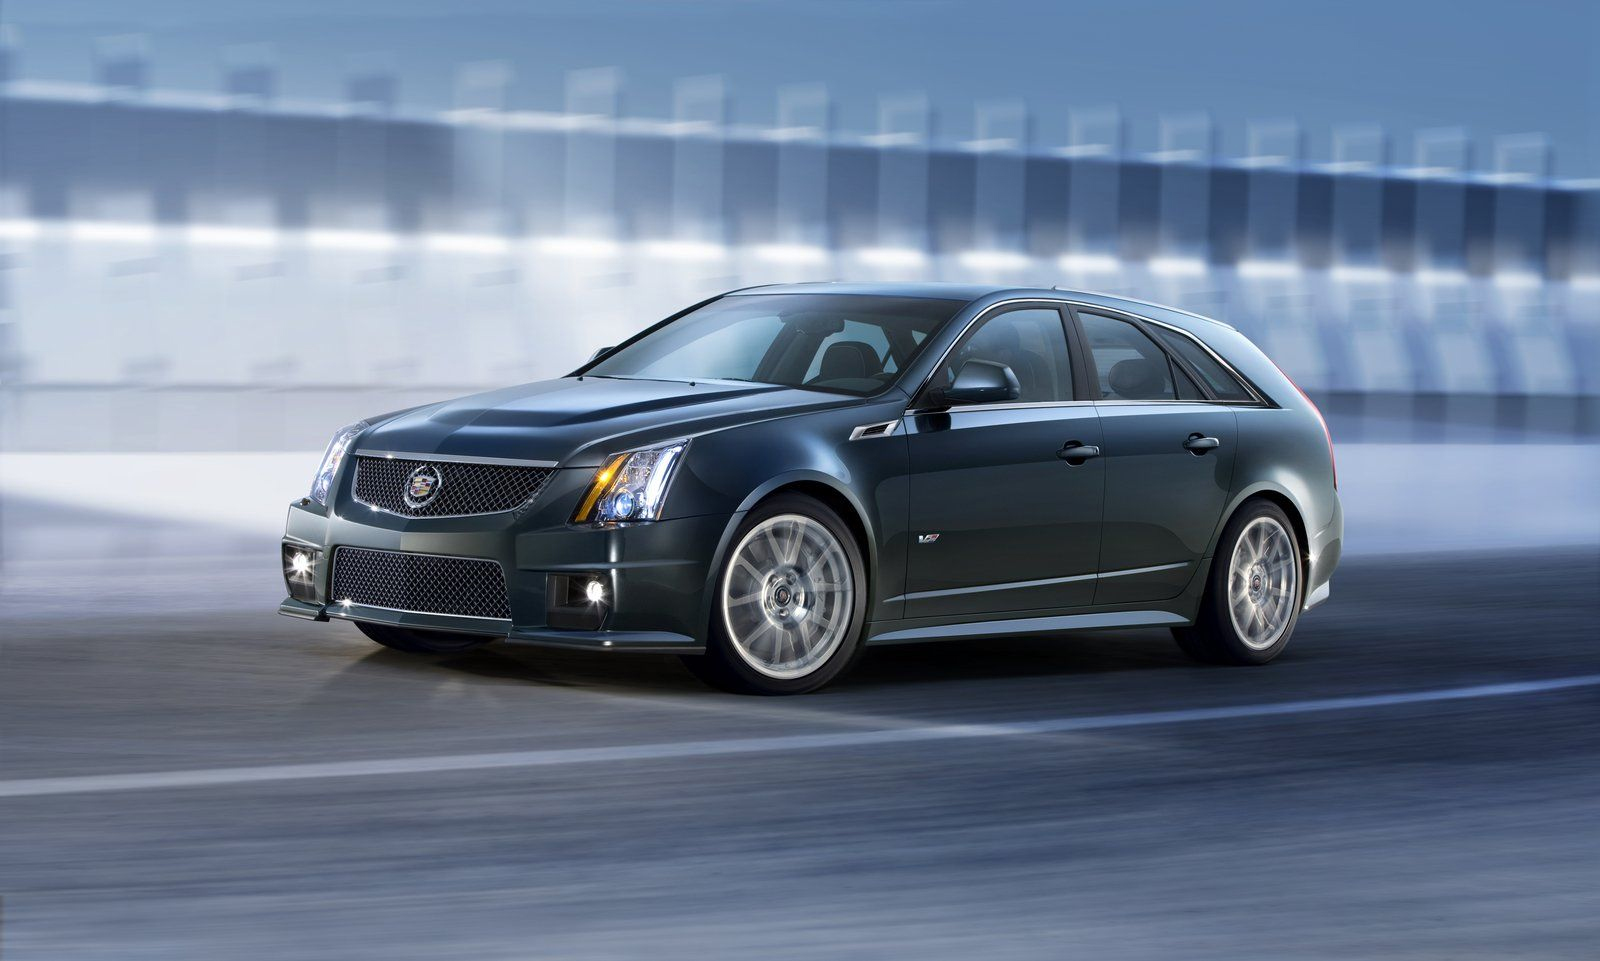 2011 Cadillac CTS-V Sport Wagon Officially Priced at $62,990